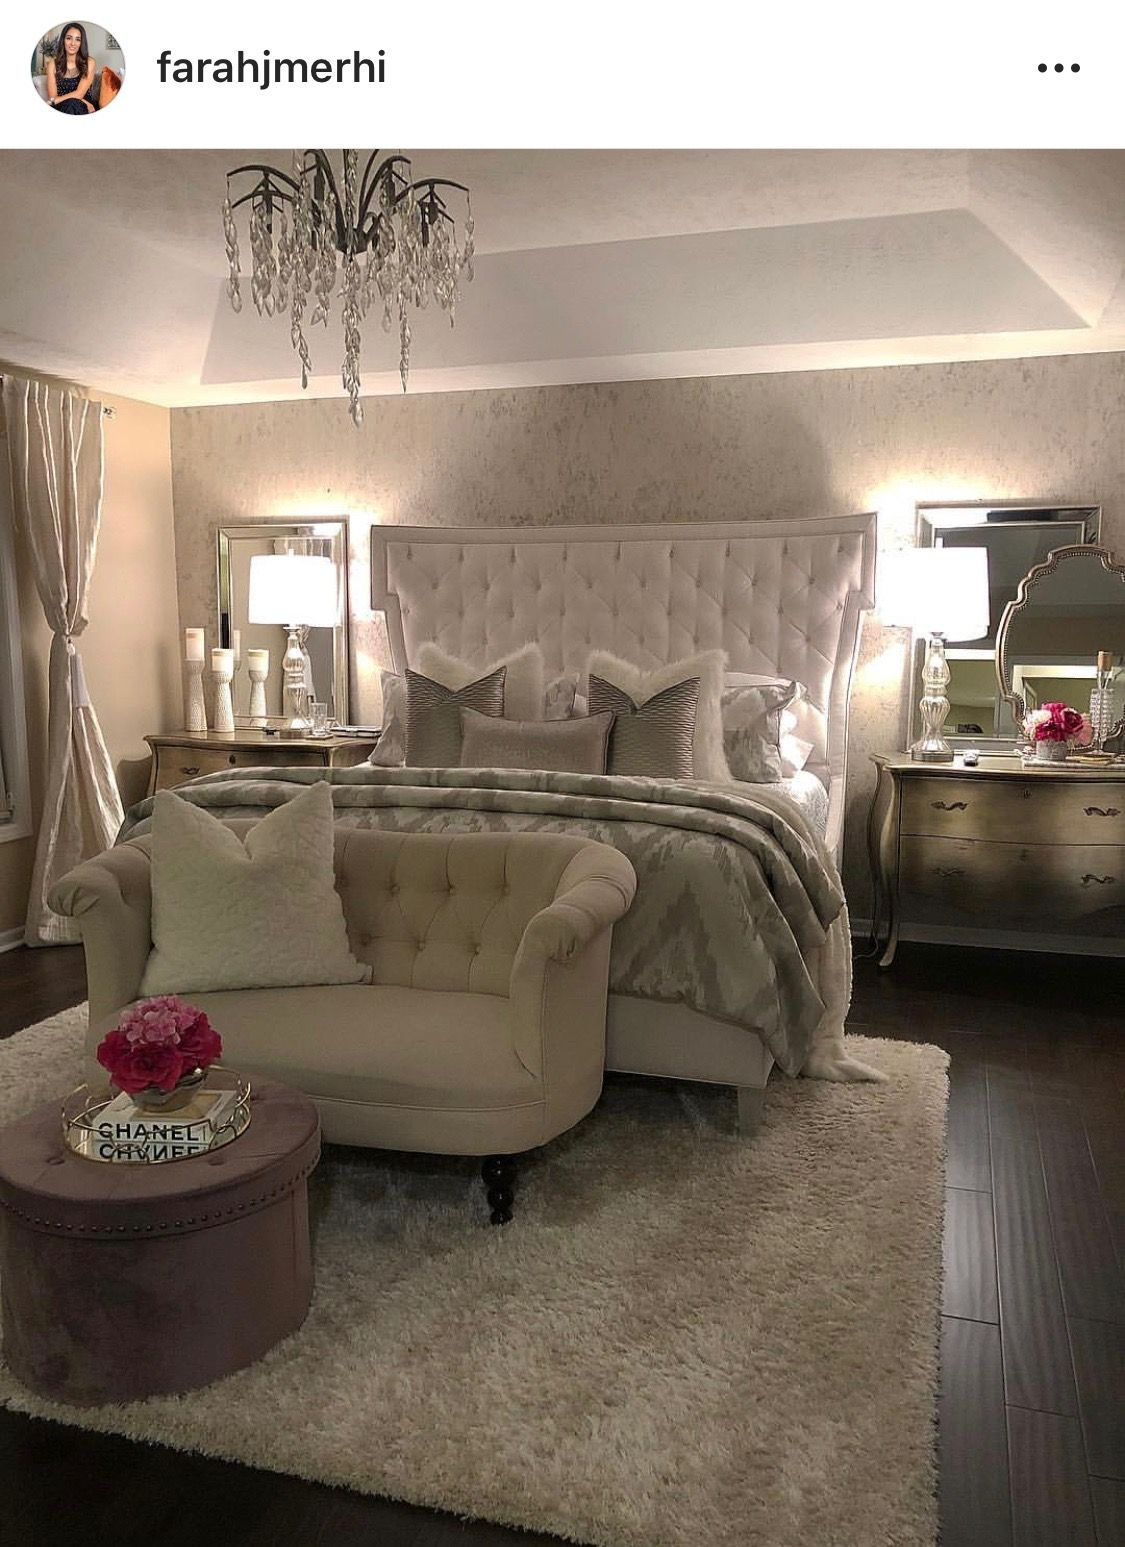 Peaceful Bedroom Relaxing Taupe Hues Jennifer Williams Https Www